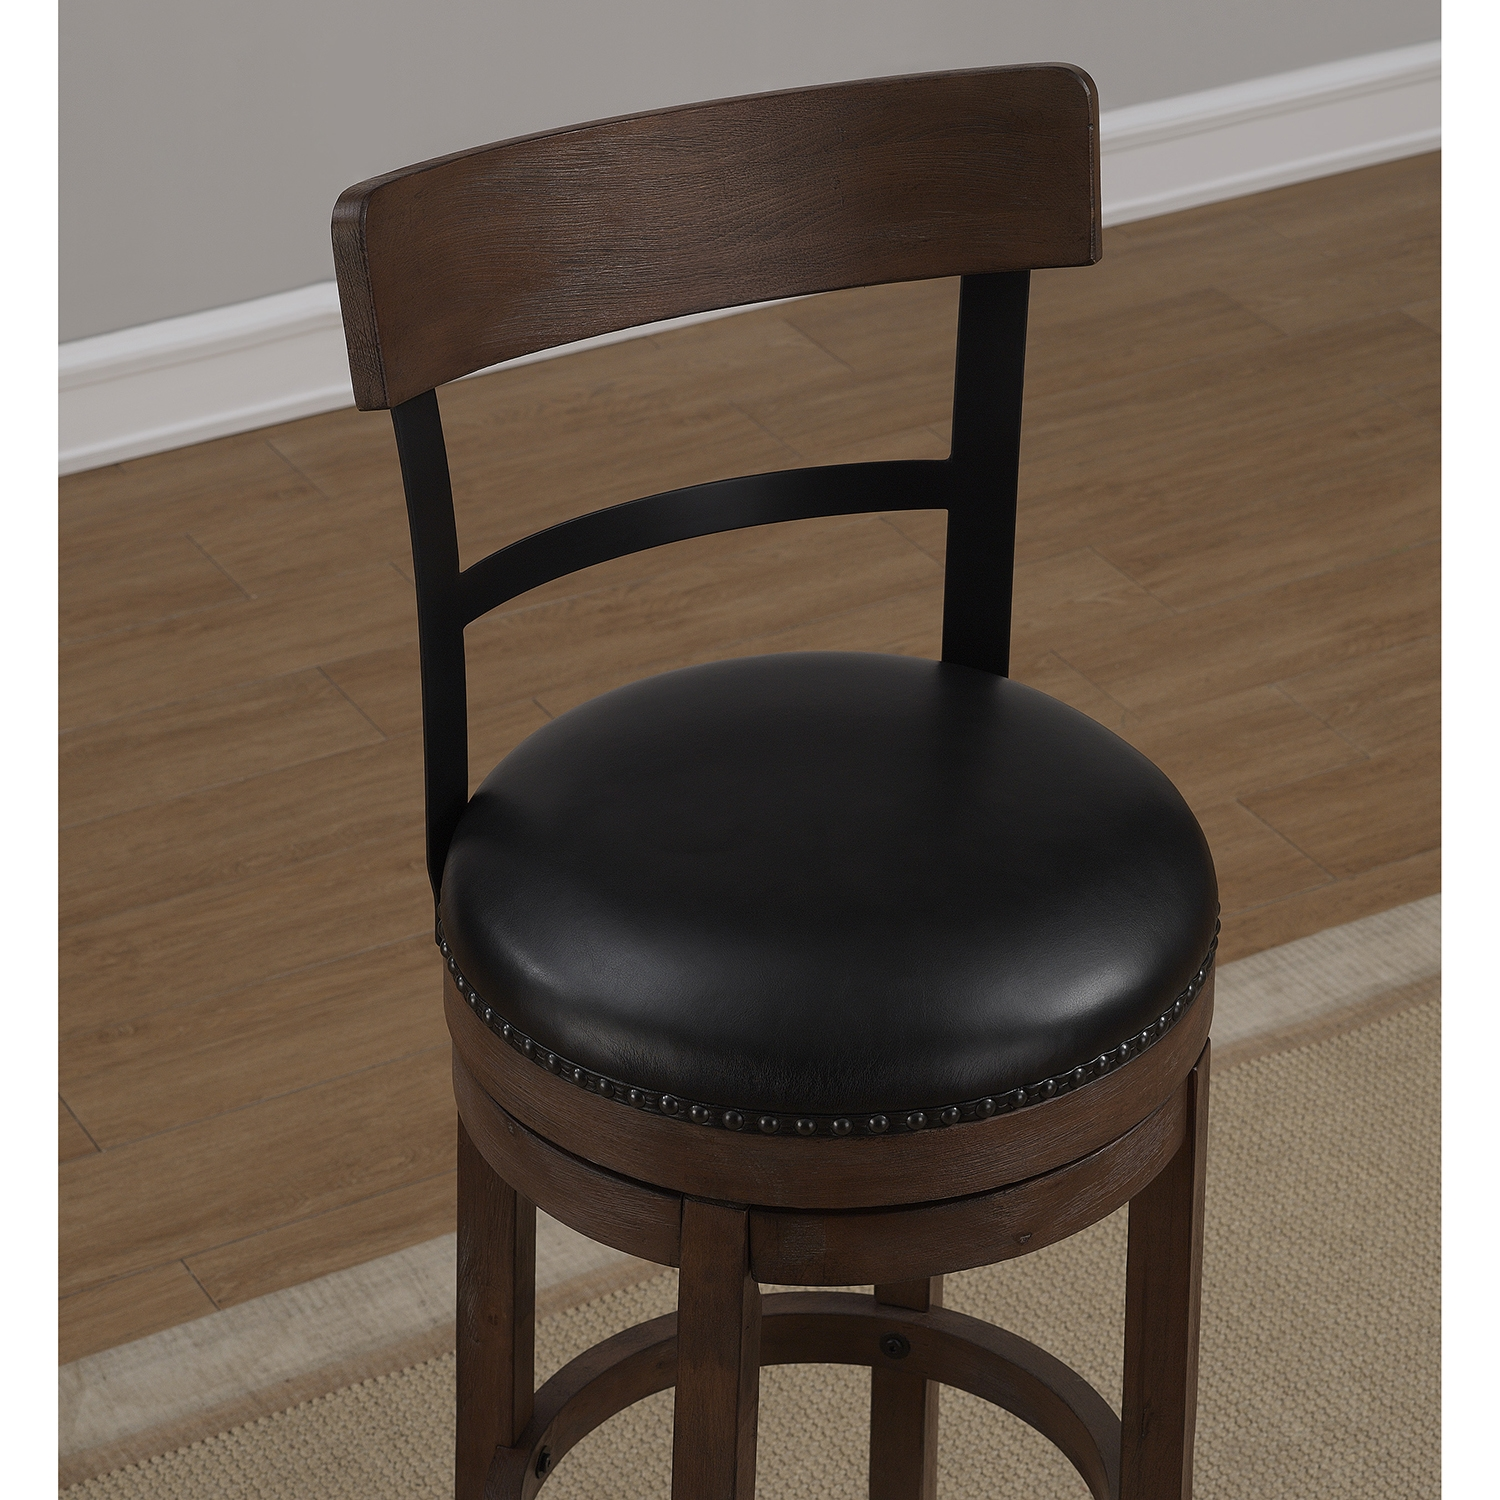 Taranto Swivel Counter Stool Washed Brown Black Bonded  : b2 208 26l 3 from www.dcgstores.com size 1000 x 1000 jpeg 573kB